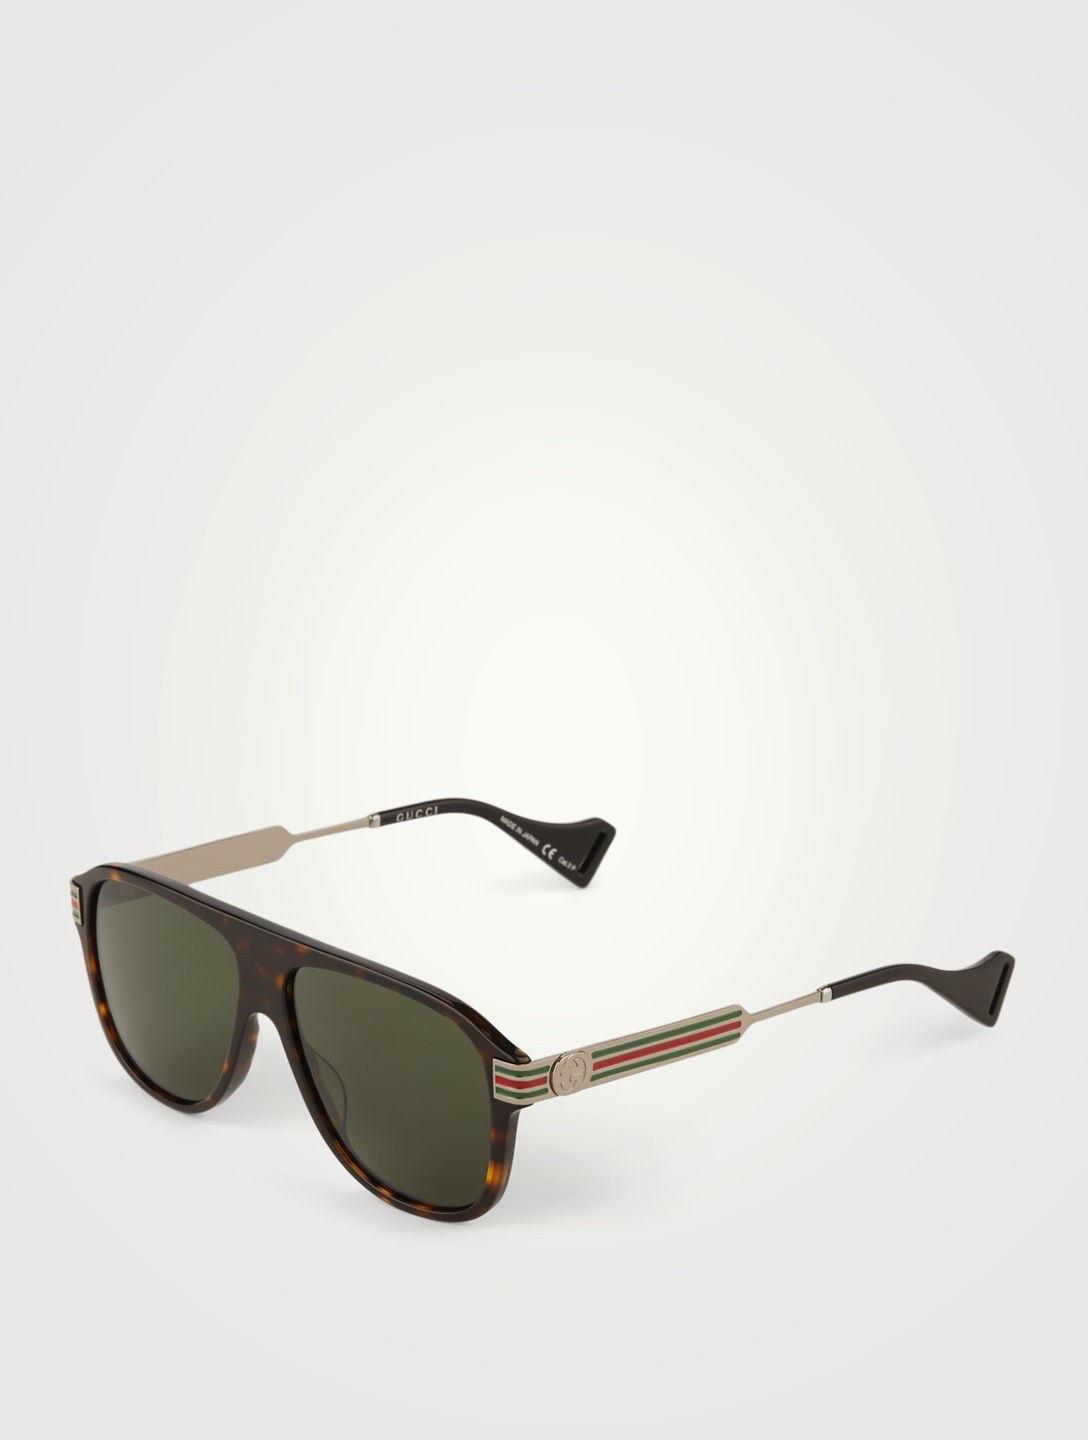 GUCCI Aviator Sunglasses Men's Brown